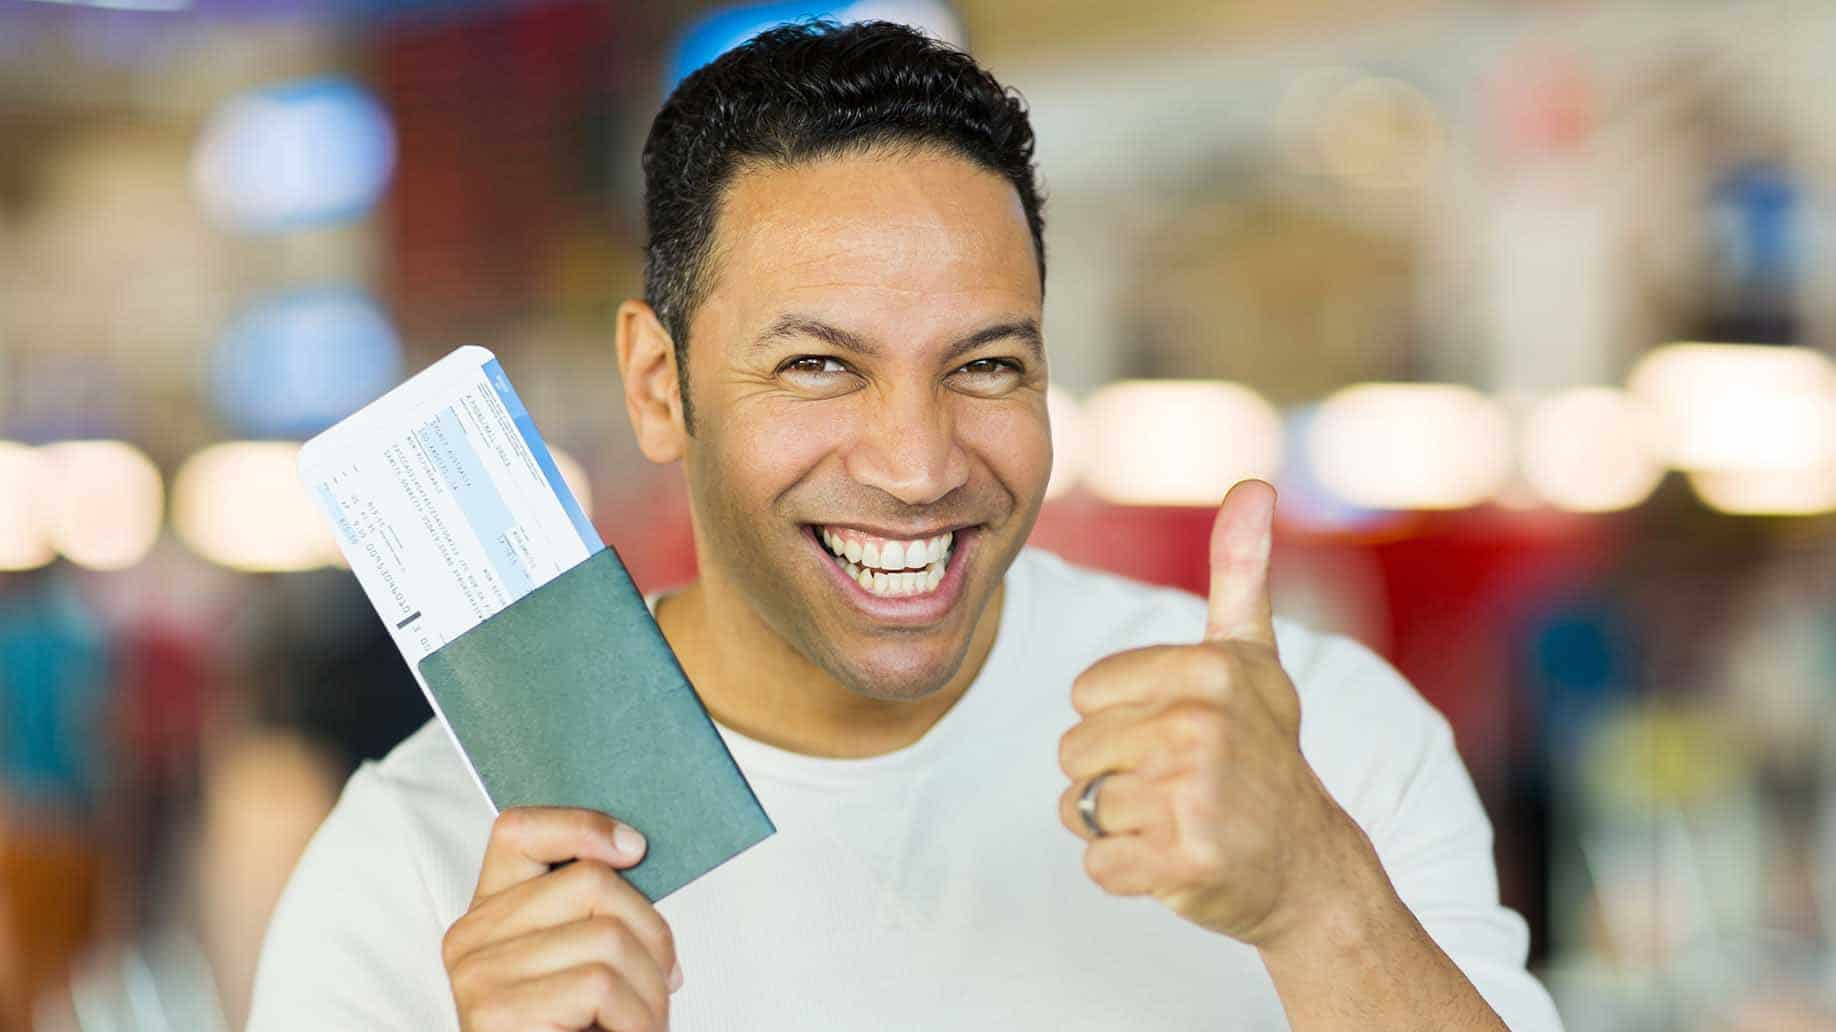 happy man giving thumbs up at airport while holding boarding pass